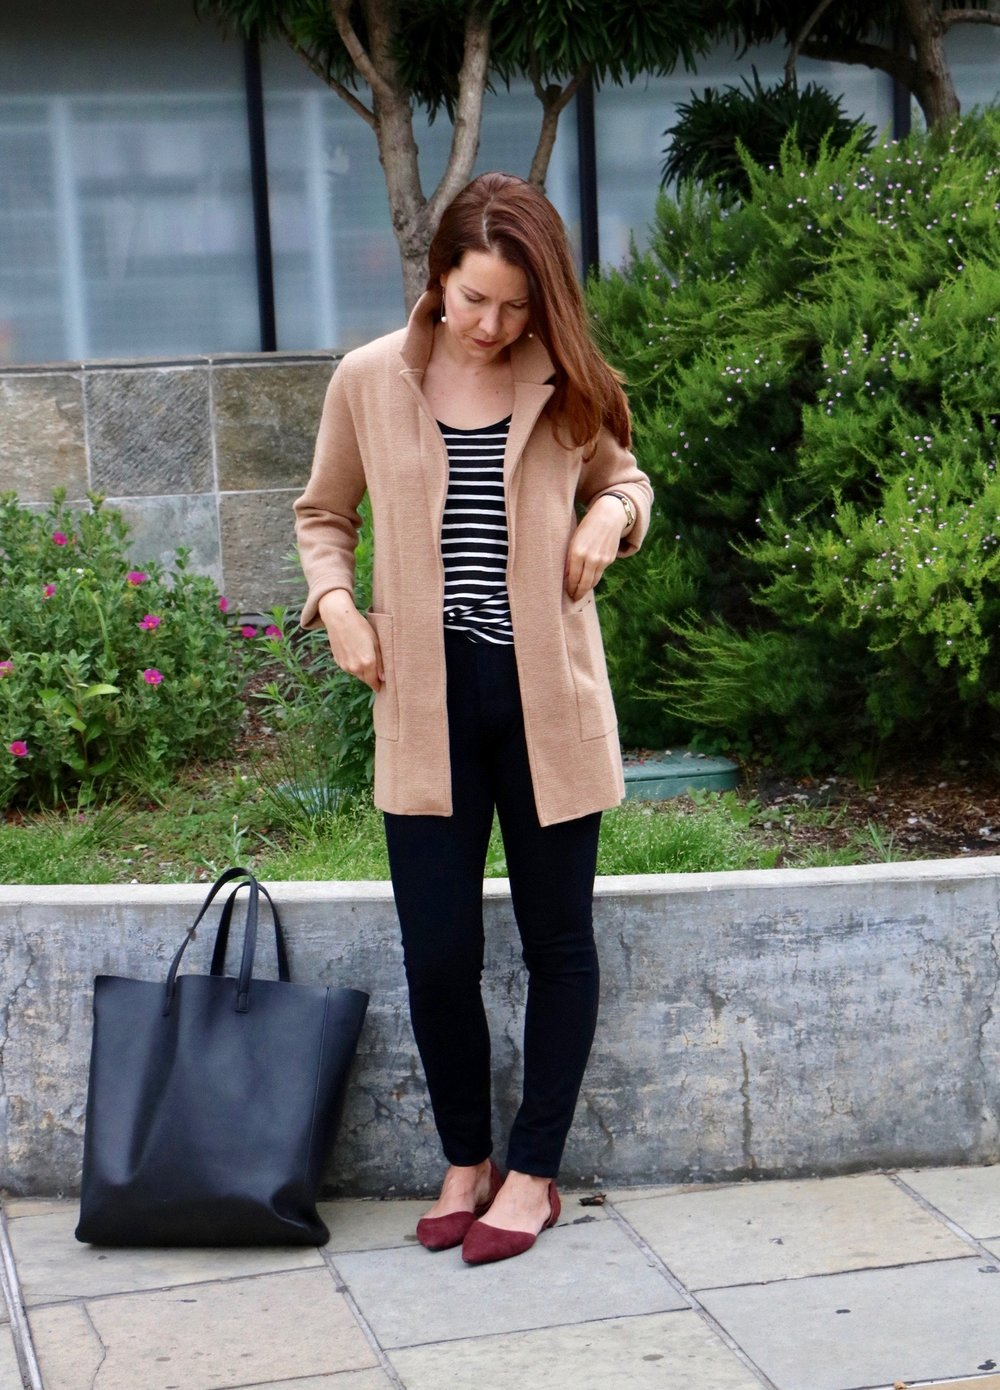 Kimberlys-fall-fashion-sf-style3.jpg